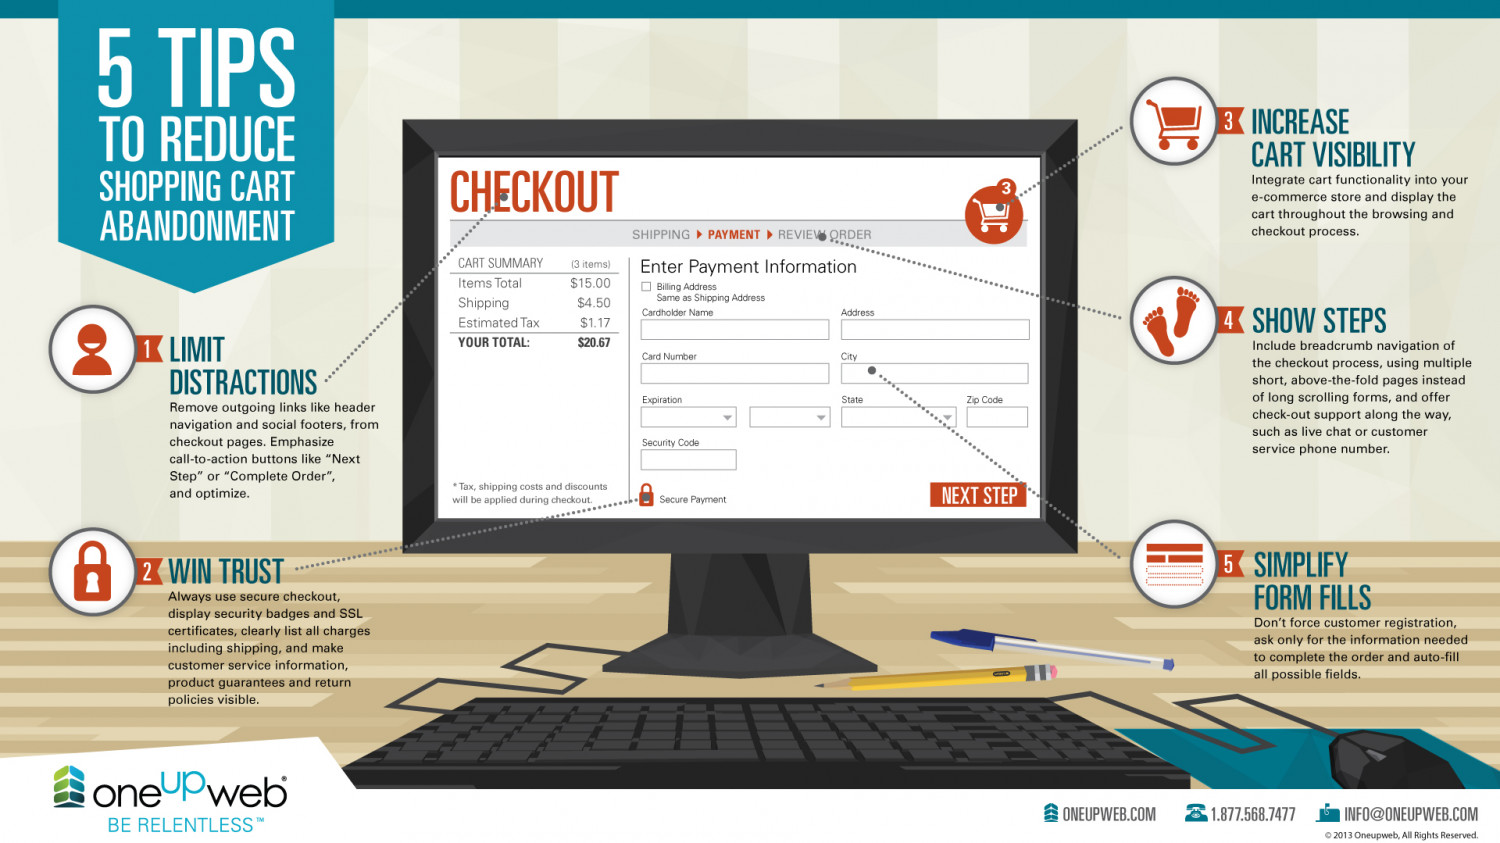 5 Tips To Reduce Shopping Cart Abandonment Infographic